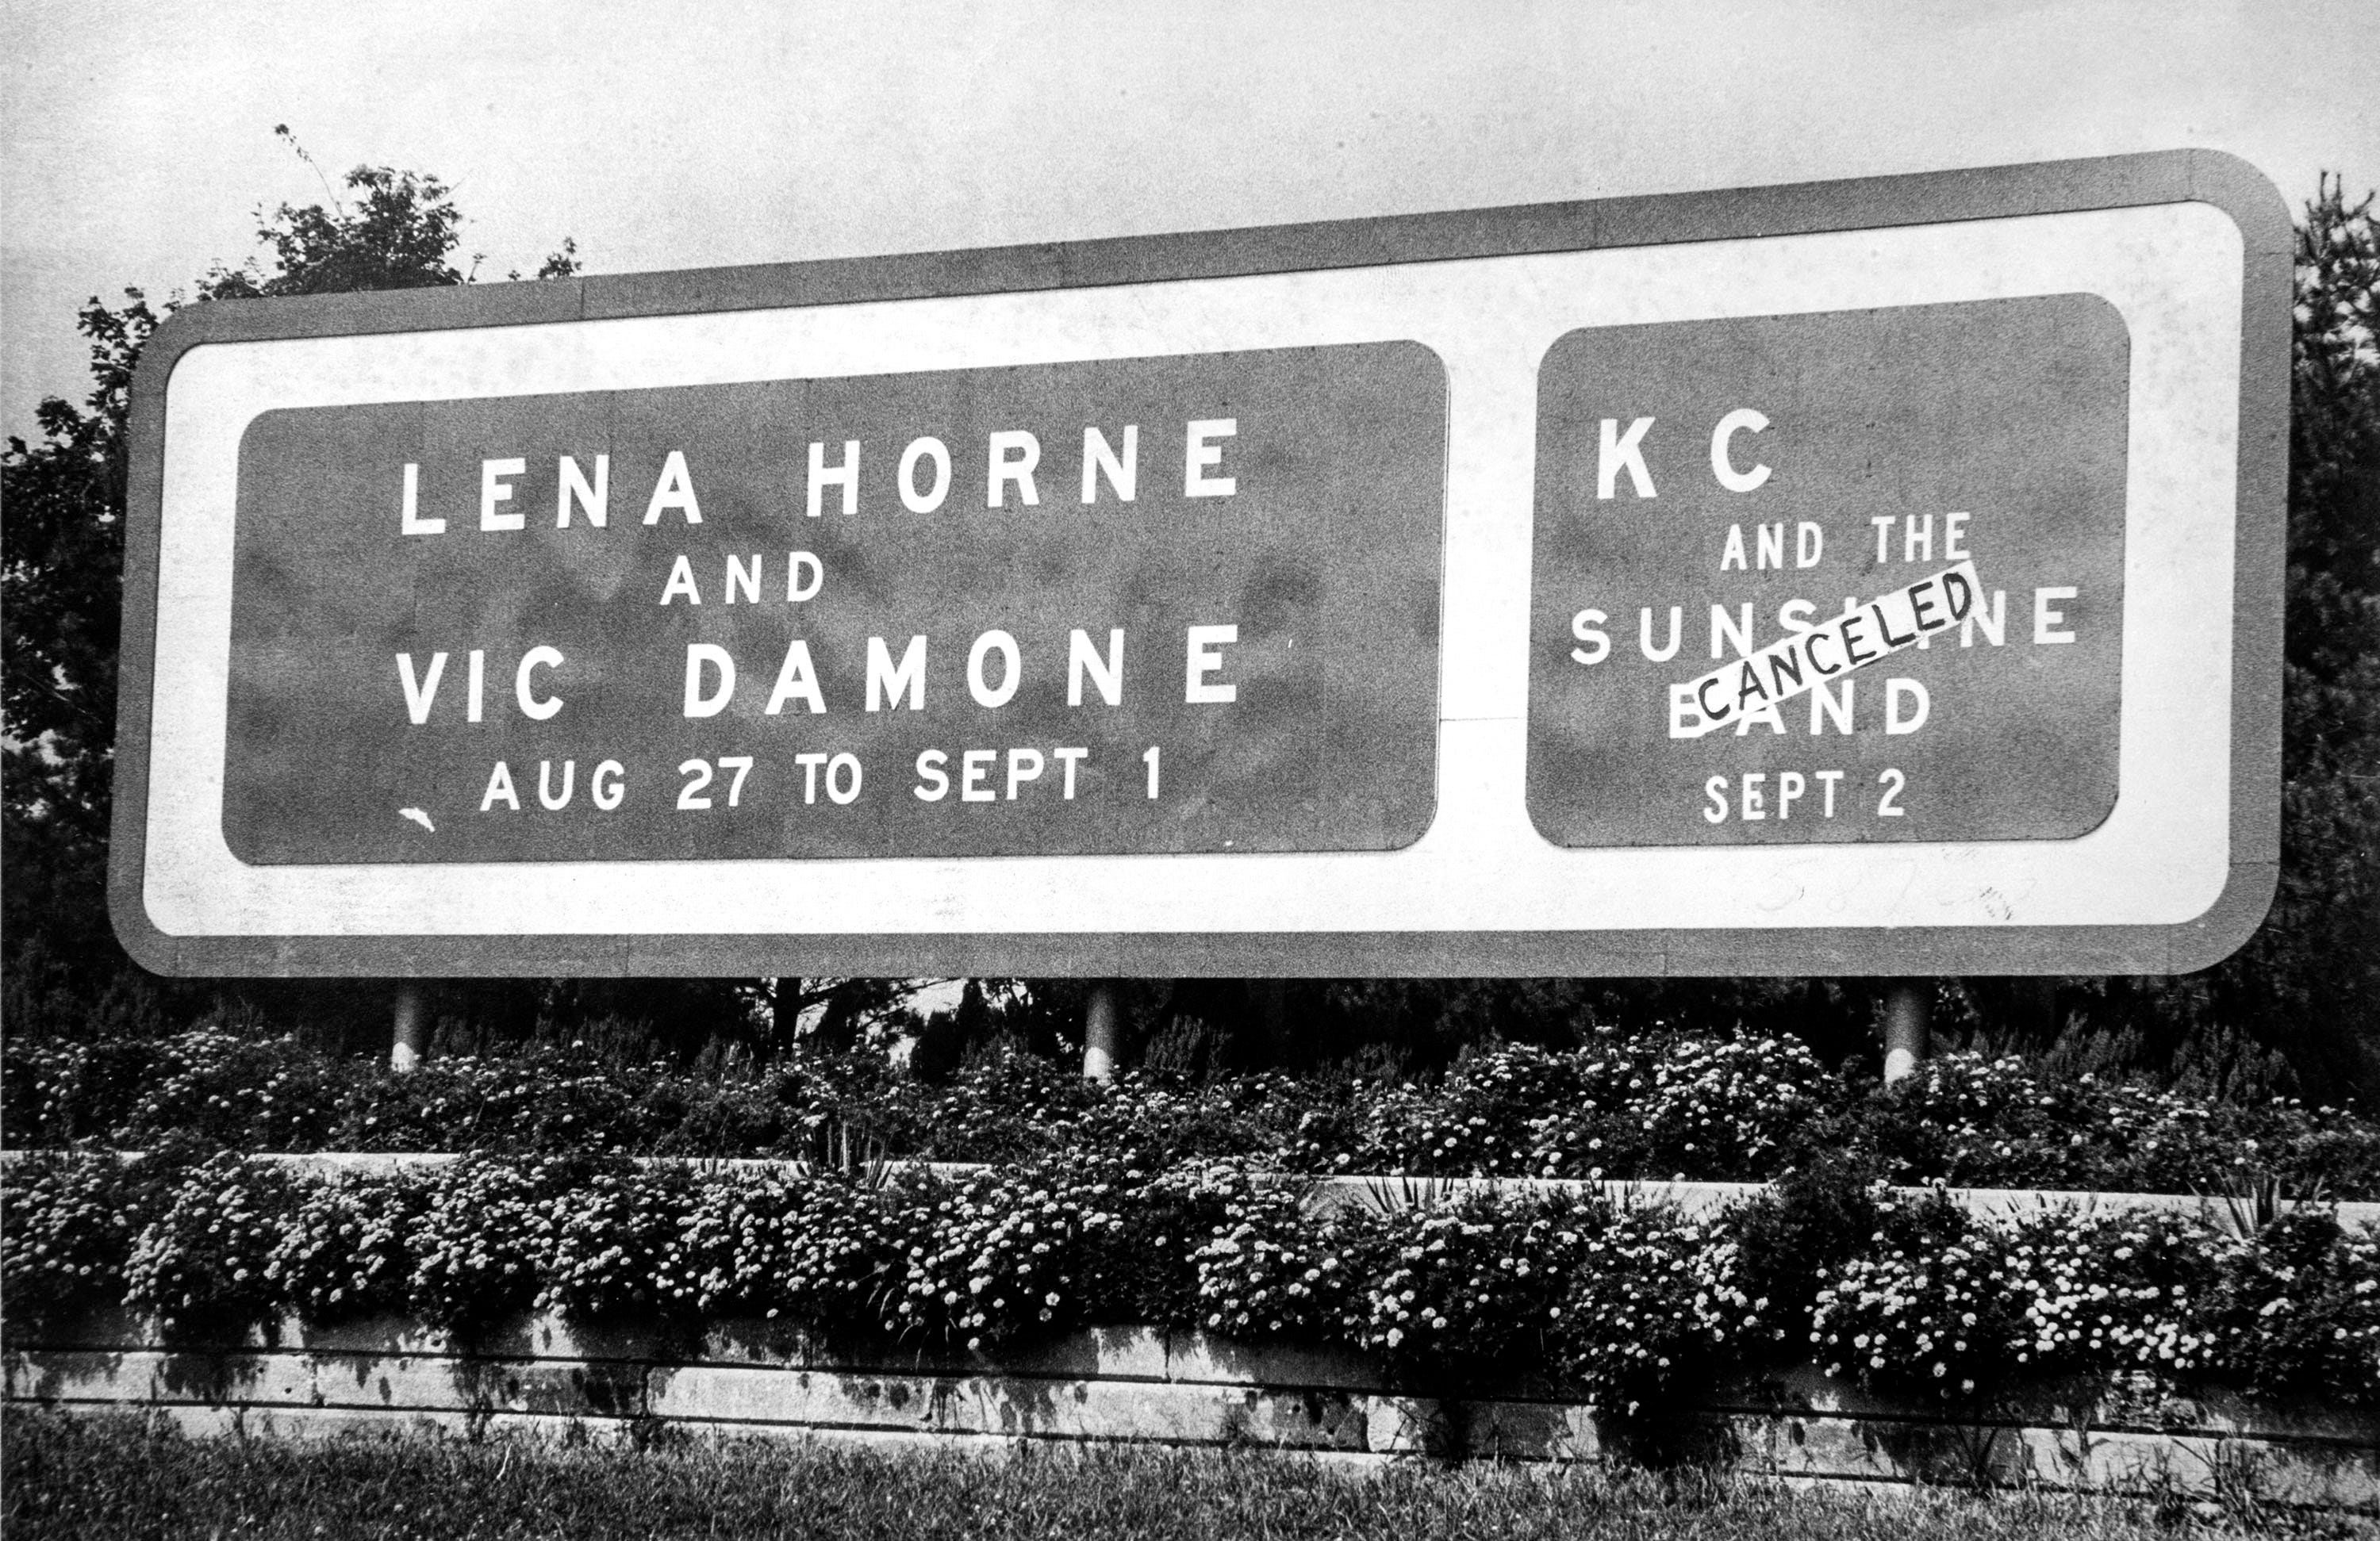 1979 Sign At The Garden State Arts Center